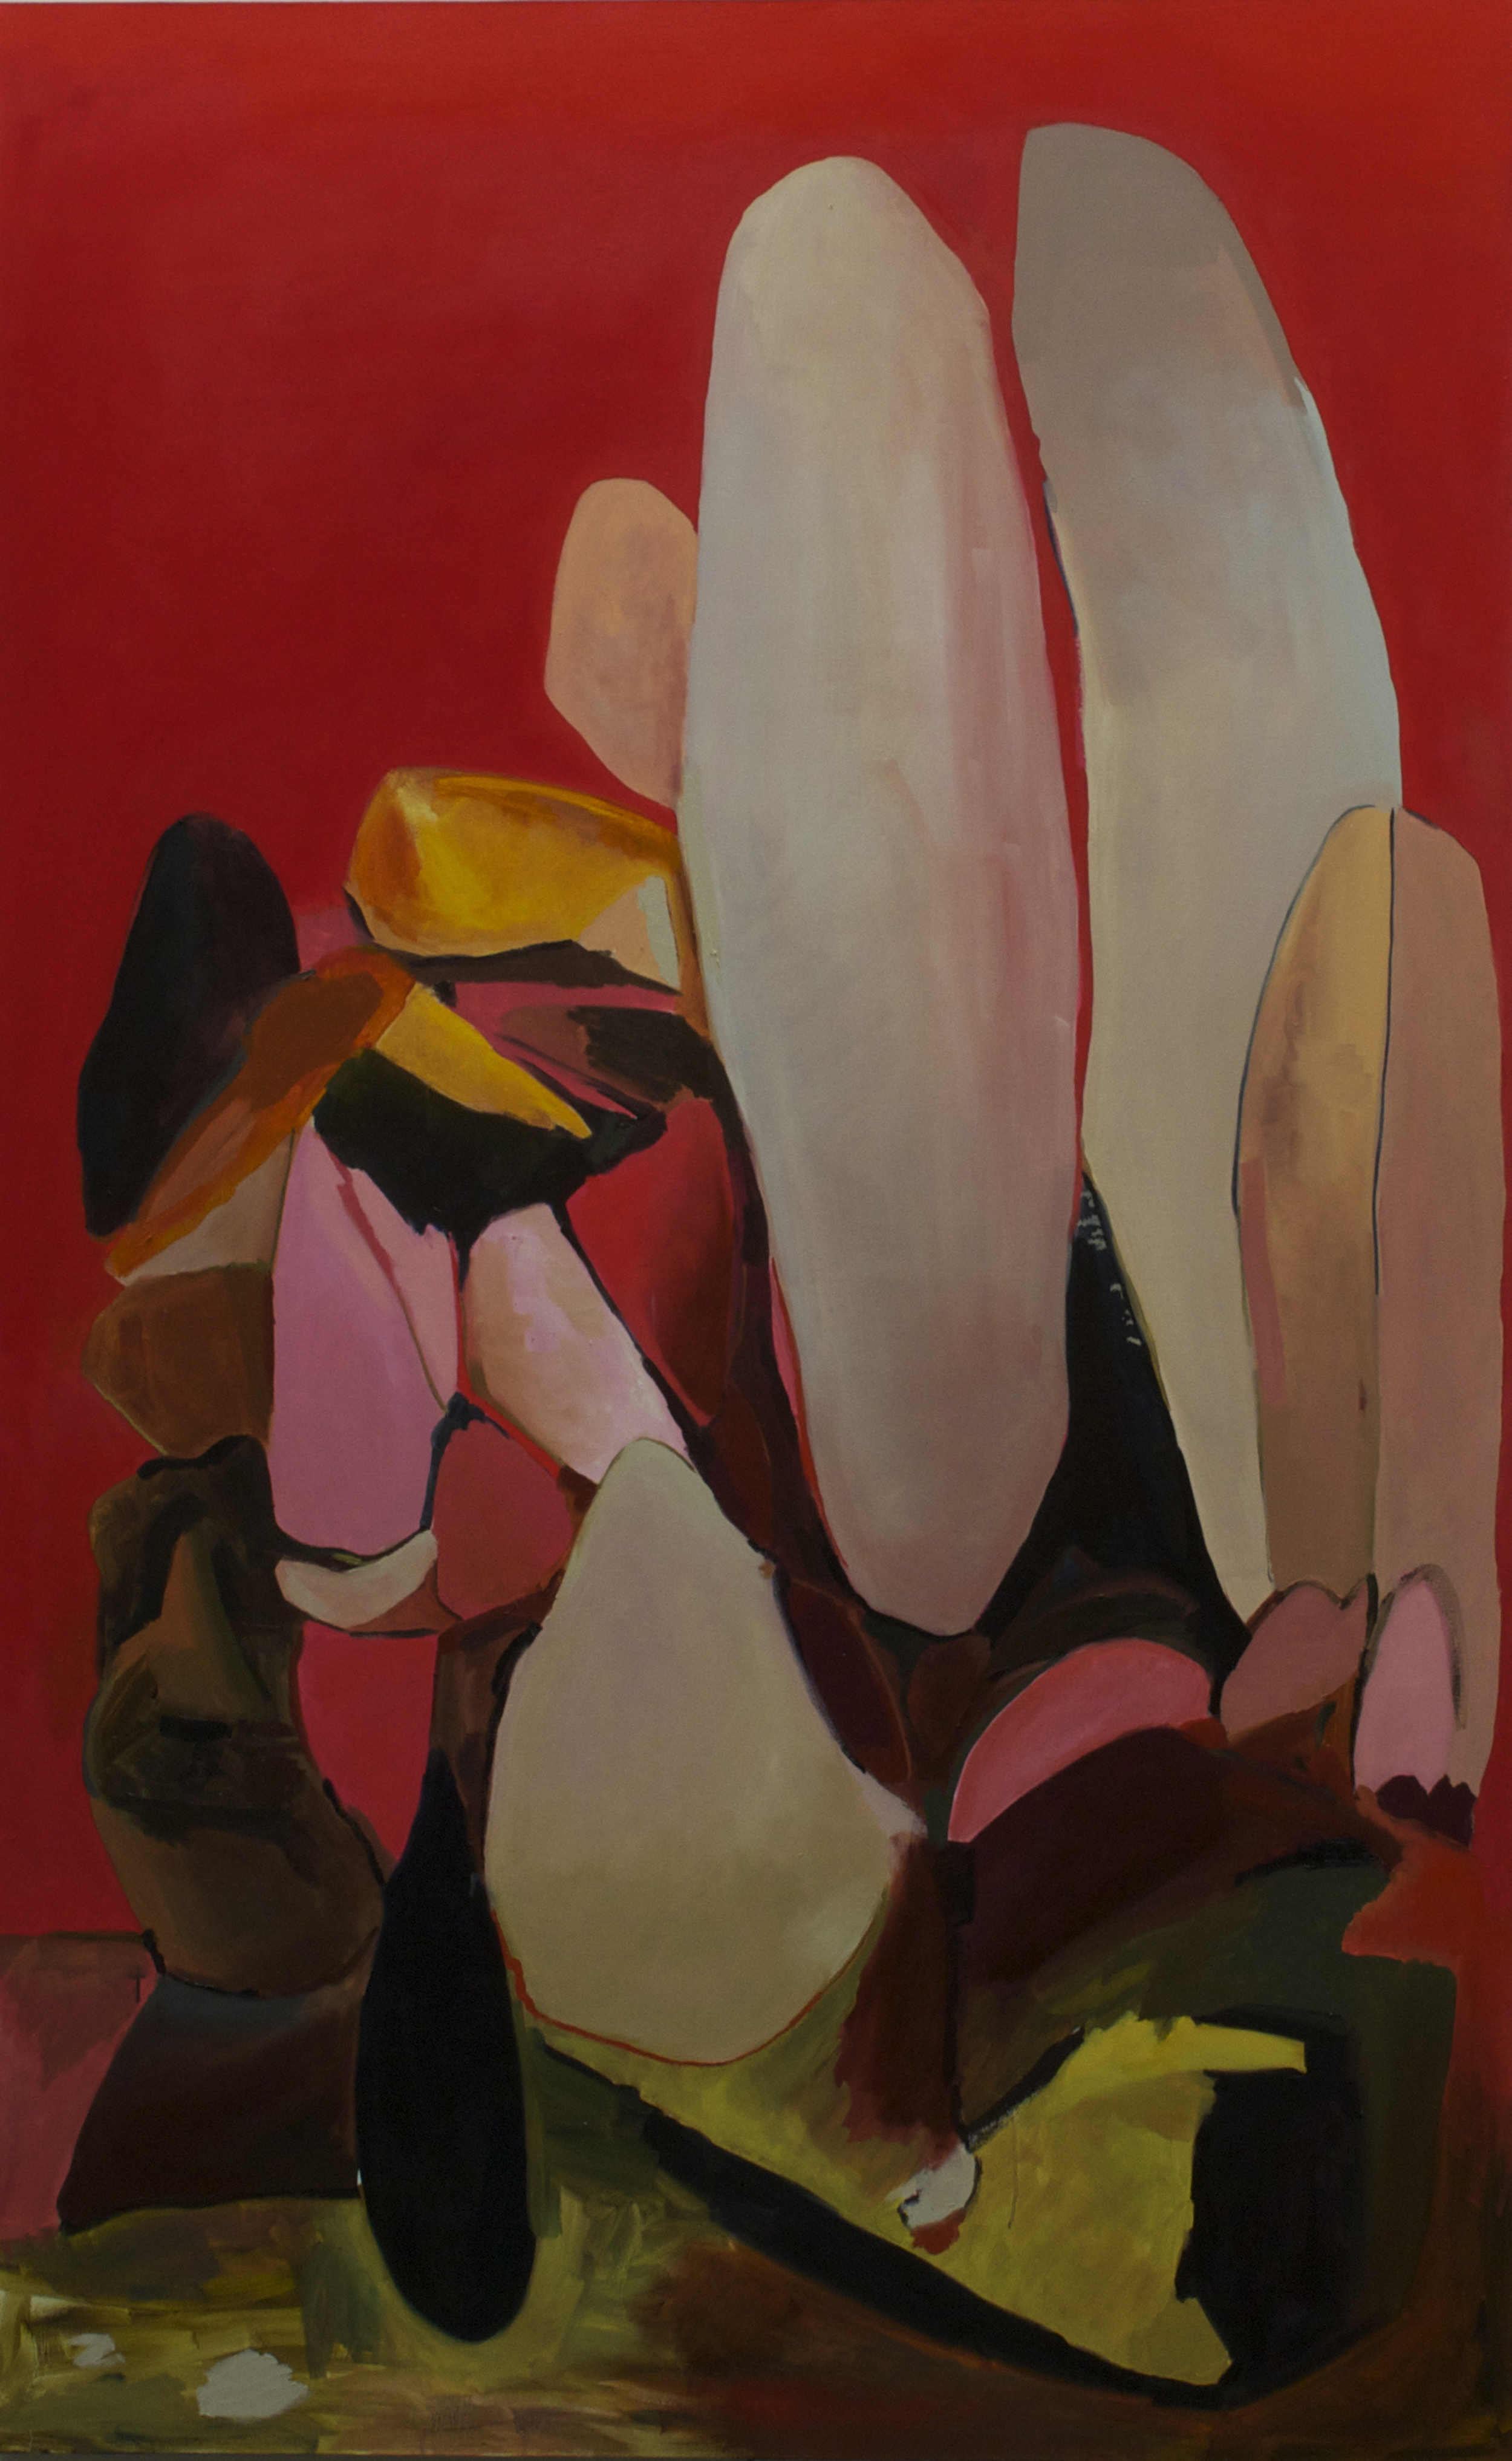 Jumbo Rocks(Red), oil on canvas, 60x95 inches.